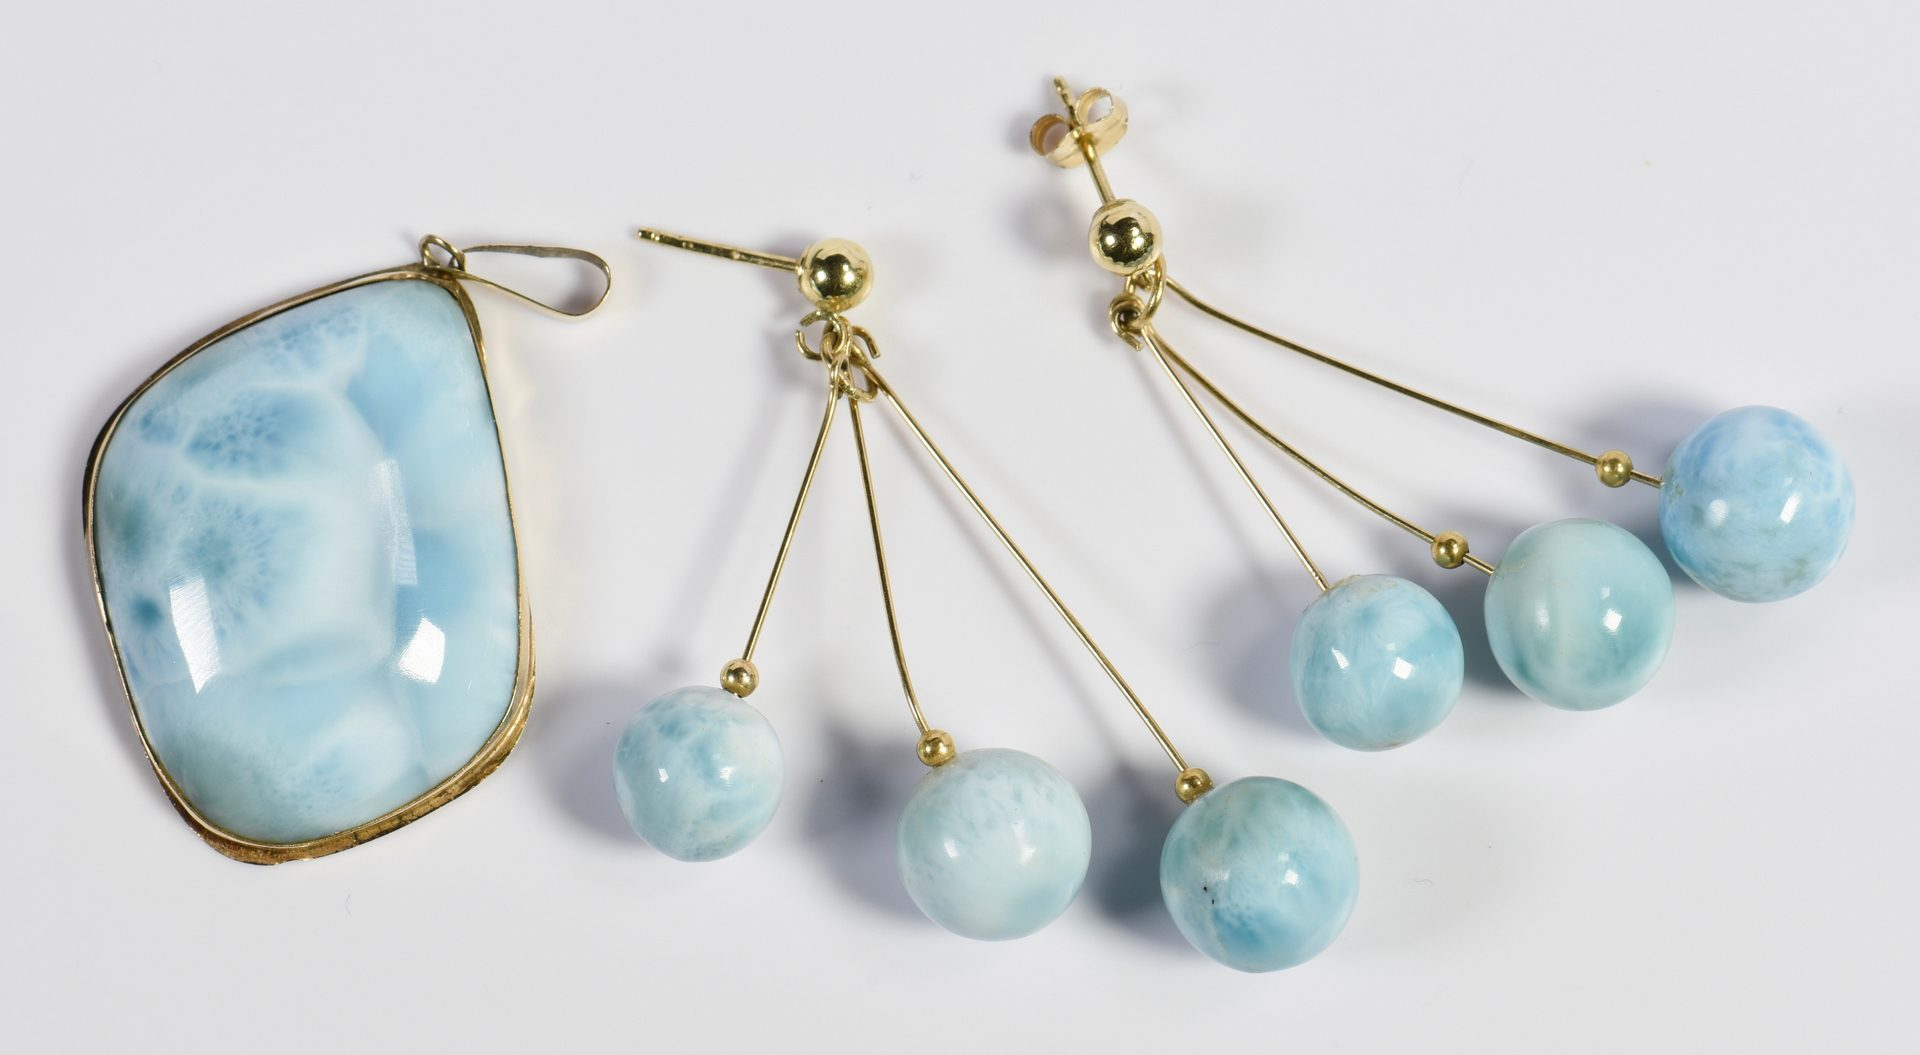 Lot 324: Group of Jade and Stone Jewelry